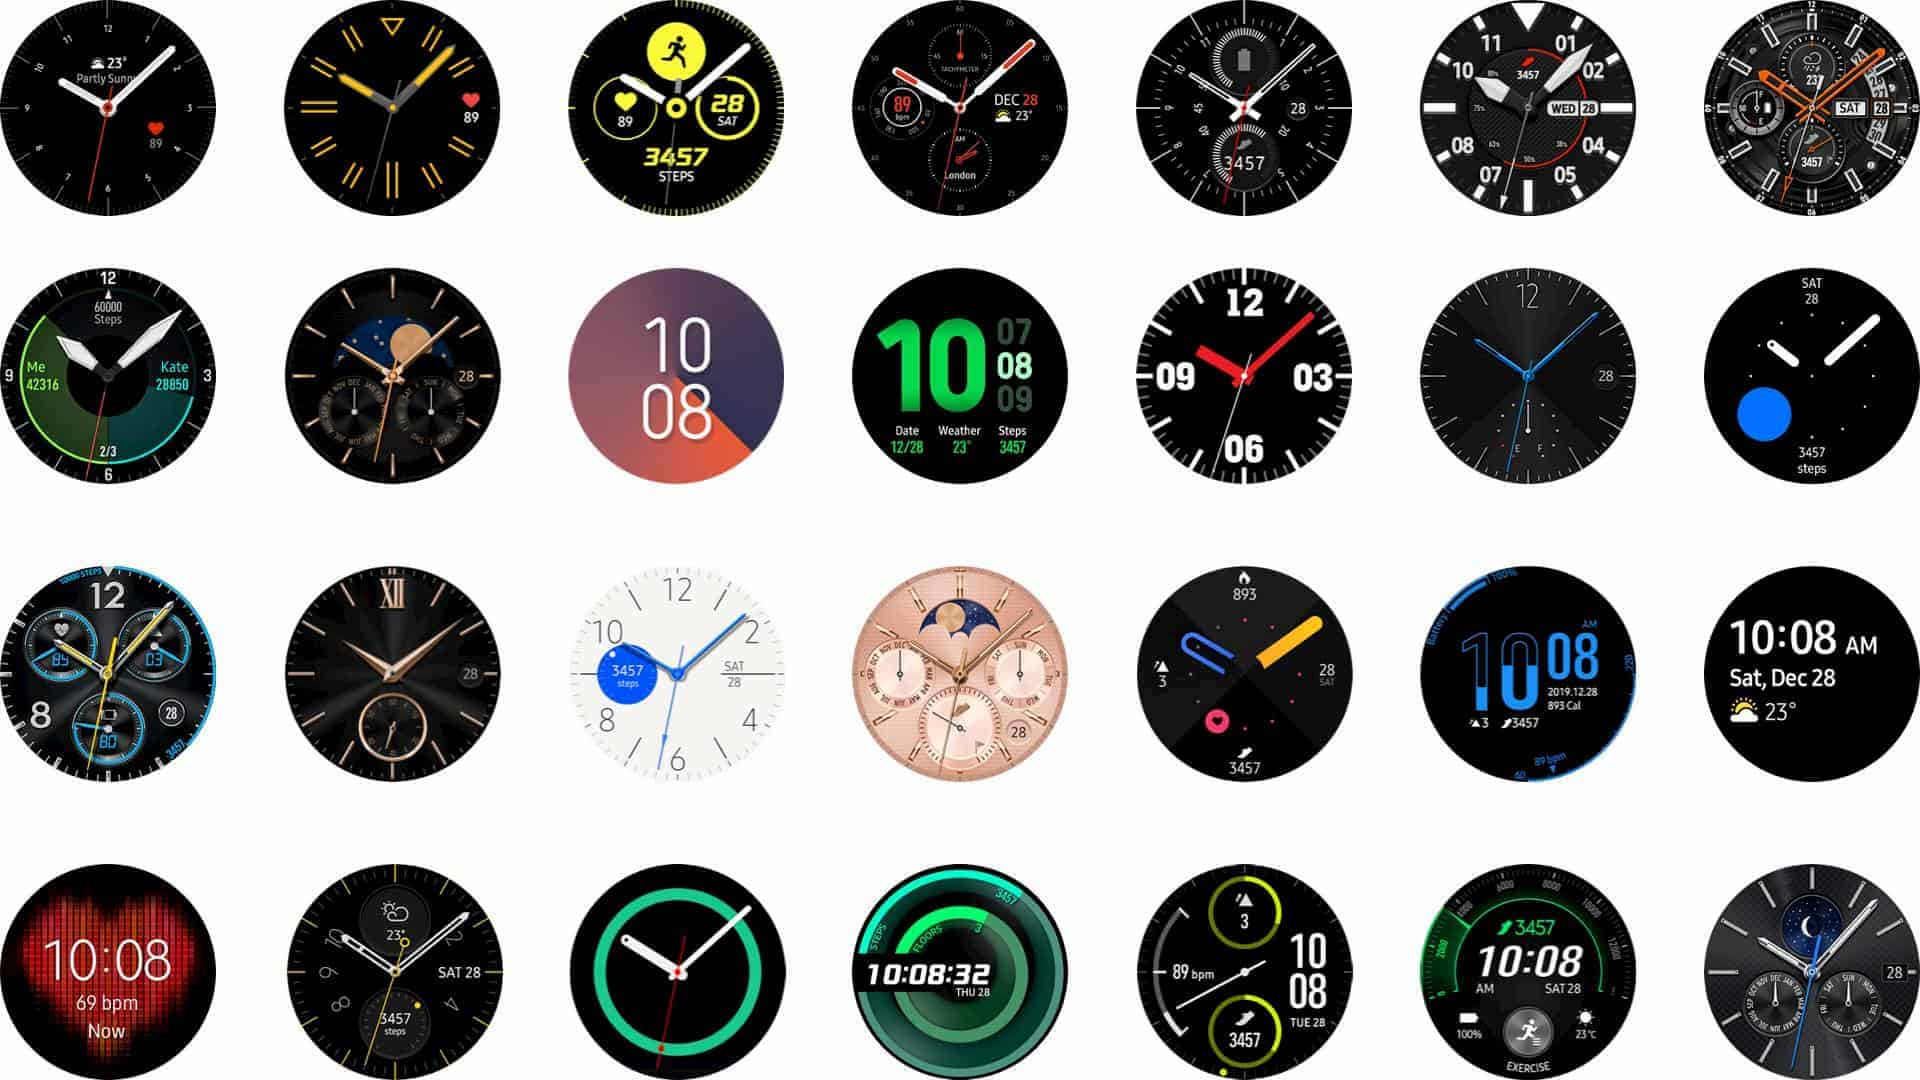 Watch UI Face Designs: Samsung Galaxy Watch 3 Reviews 2020